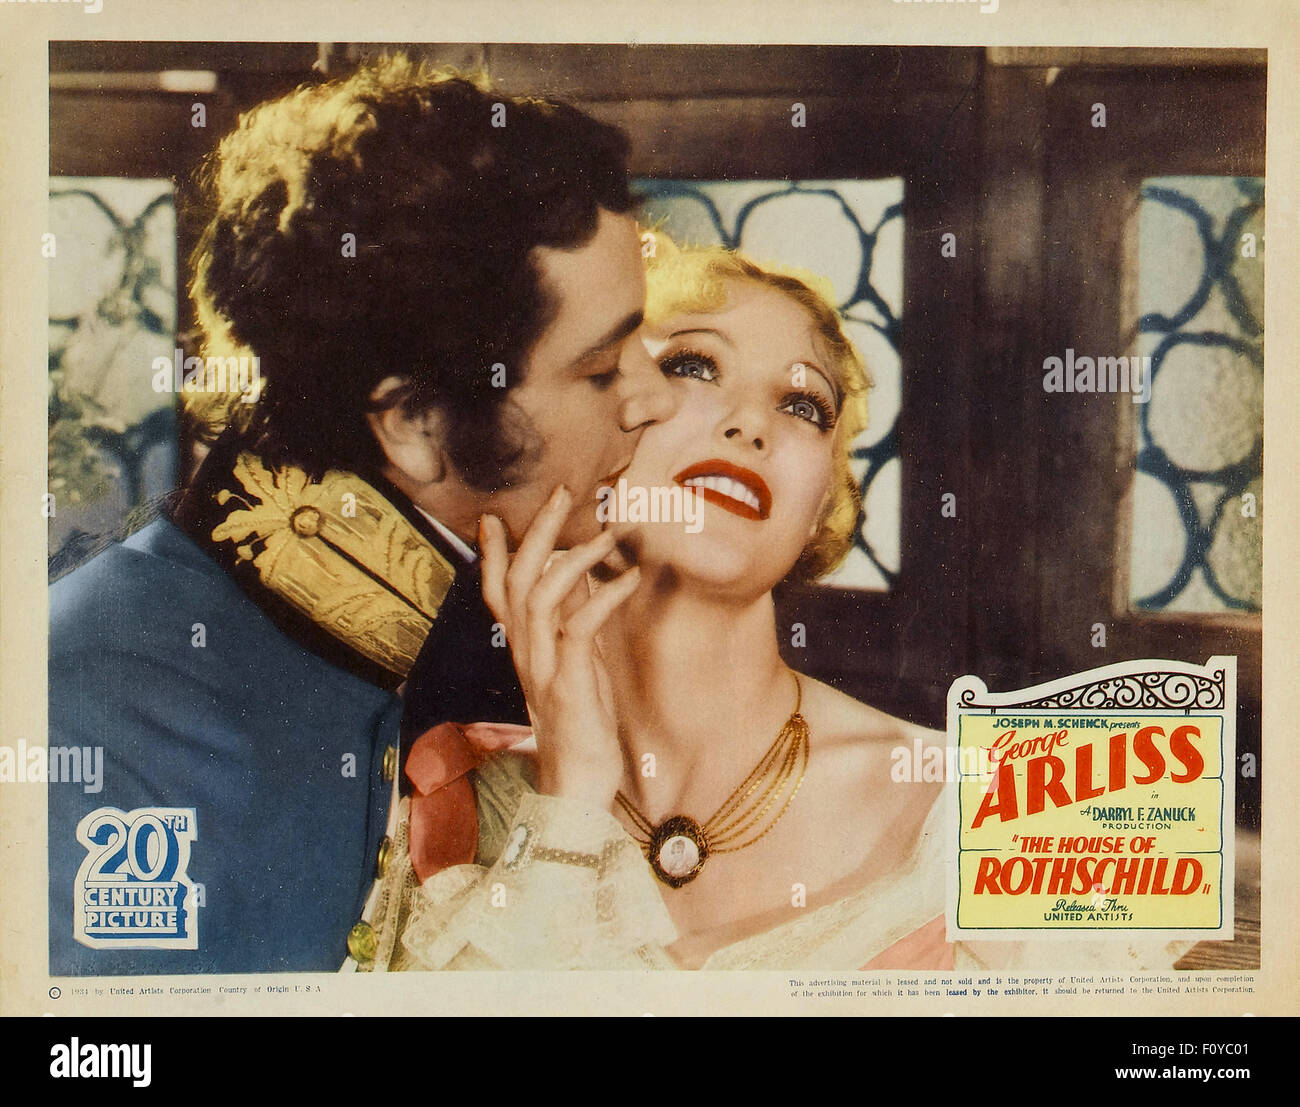 The House of Rothschild   - 01 - Movie Poster - Stock Image